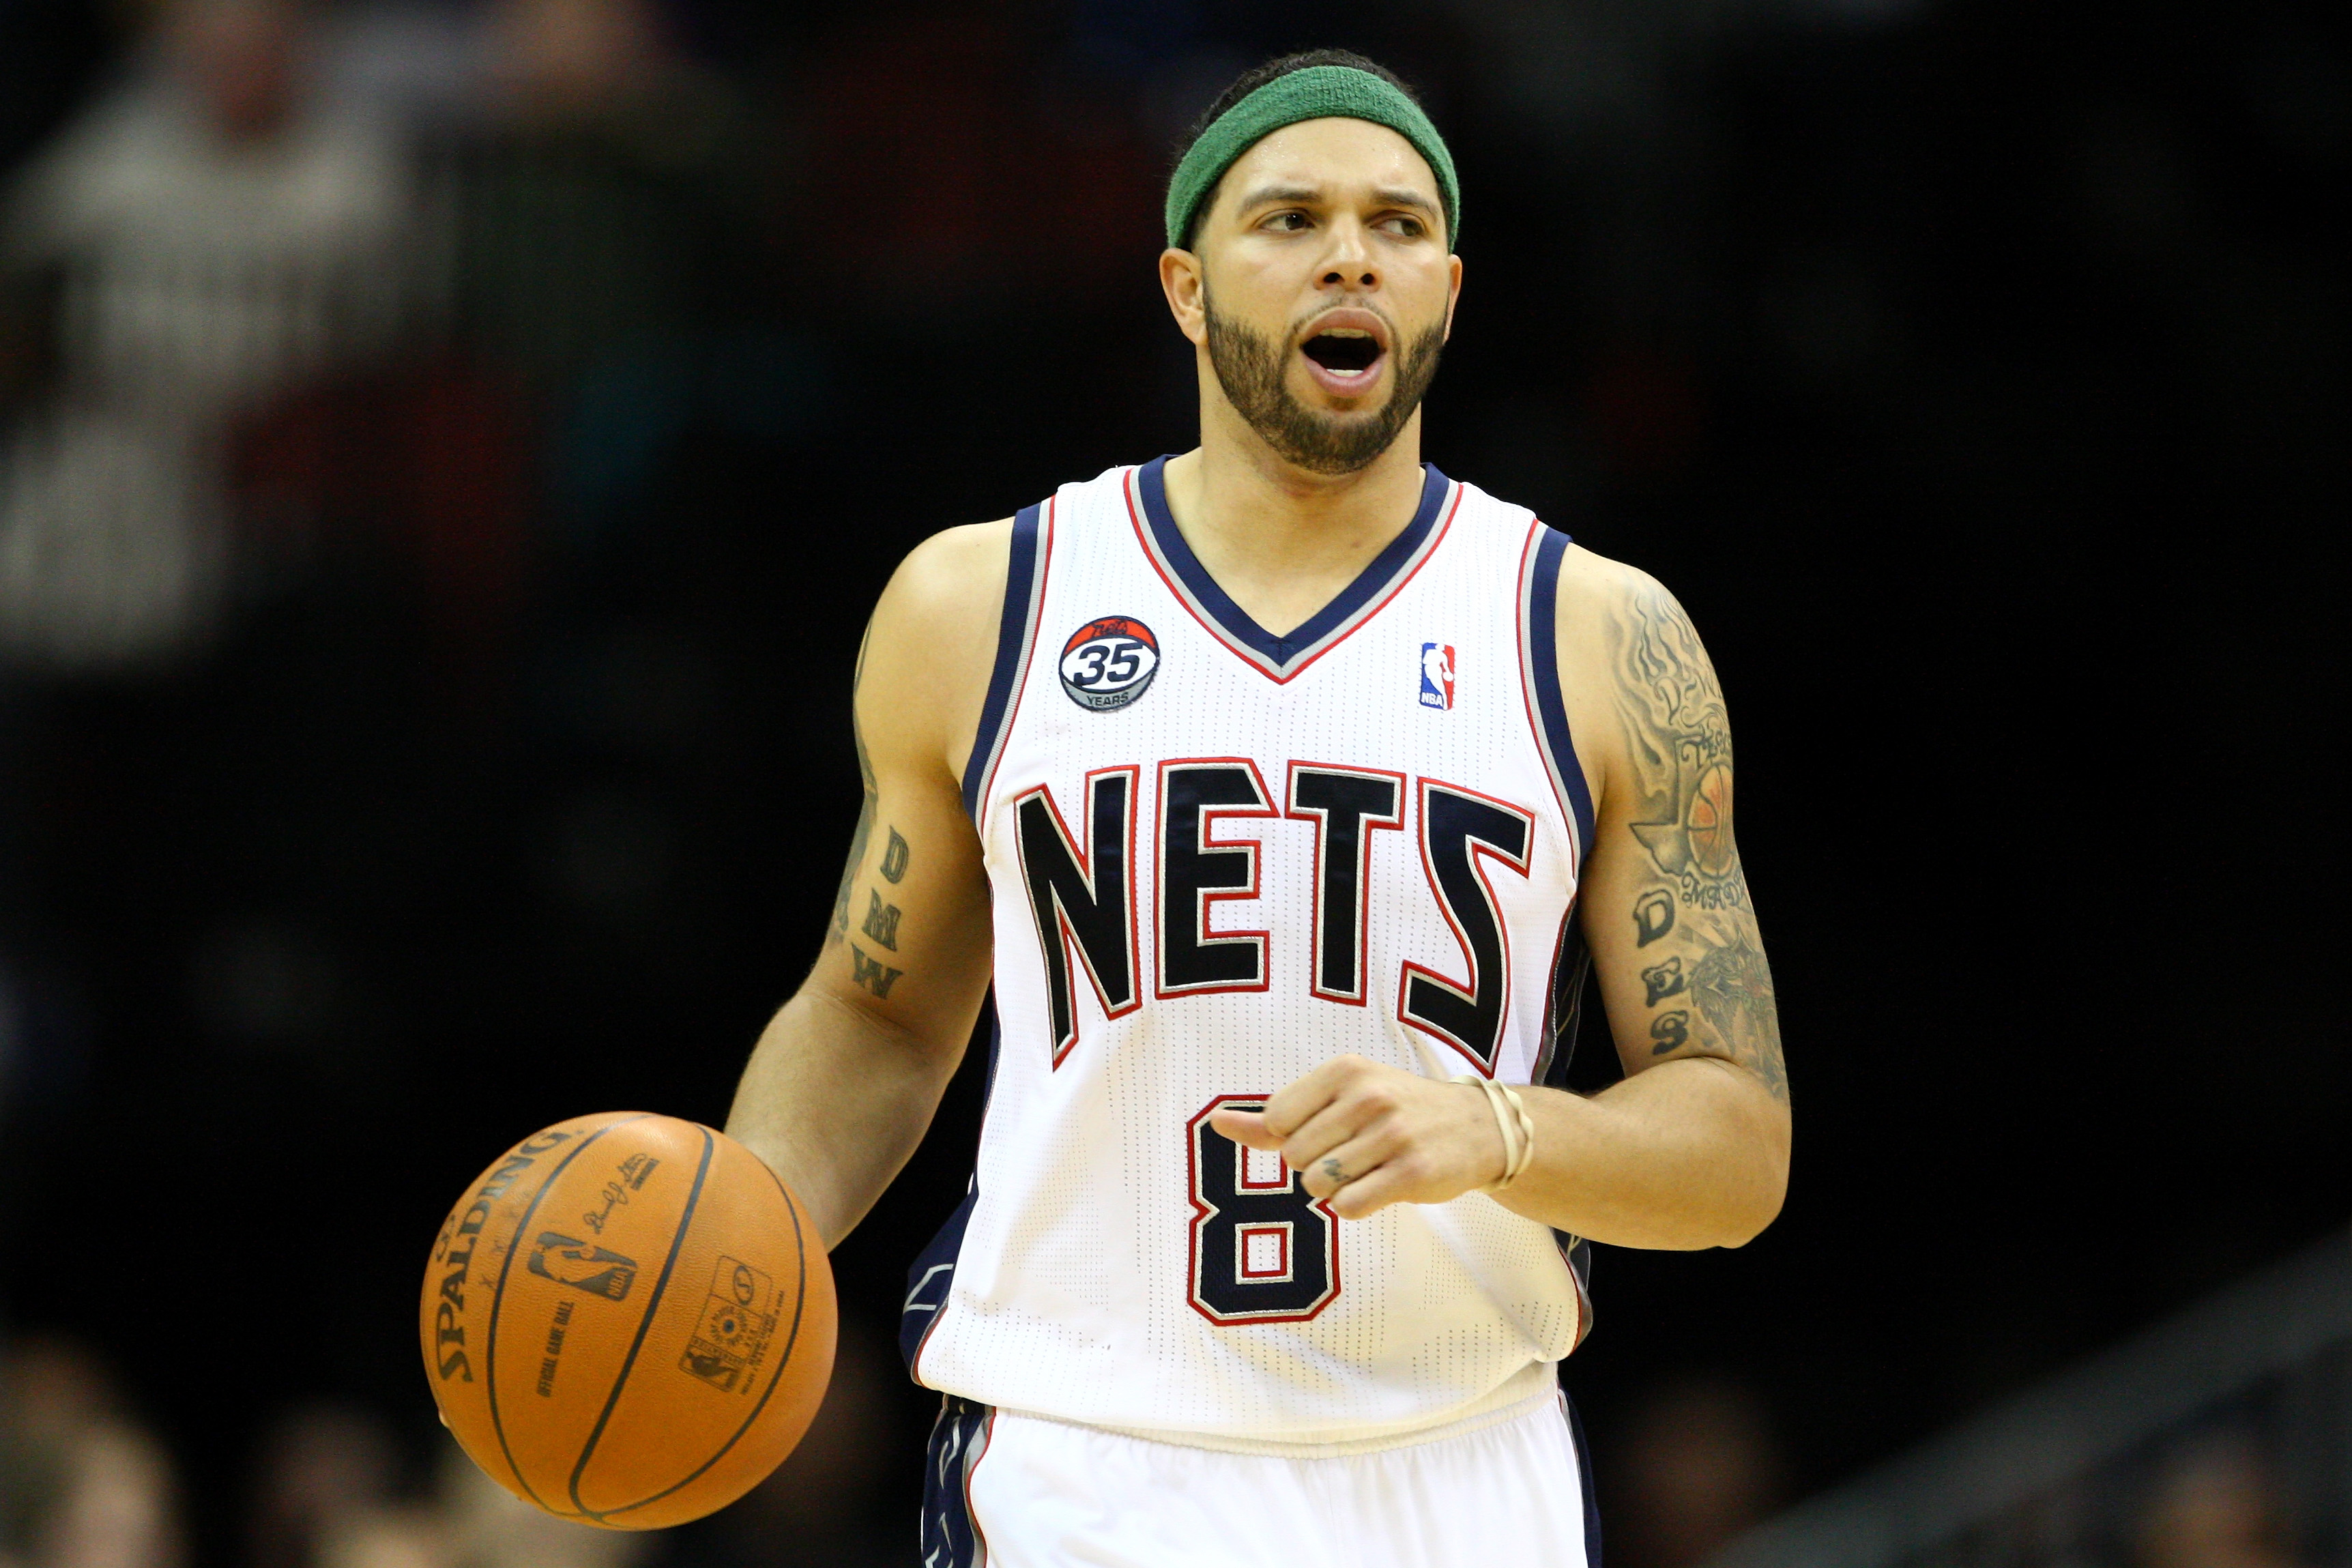 Deron Williams could get an extra year worth about $25 million if he re-signs with the Nets. (Getty Images)